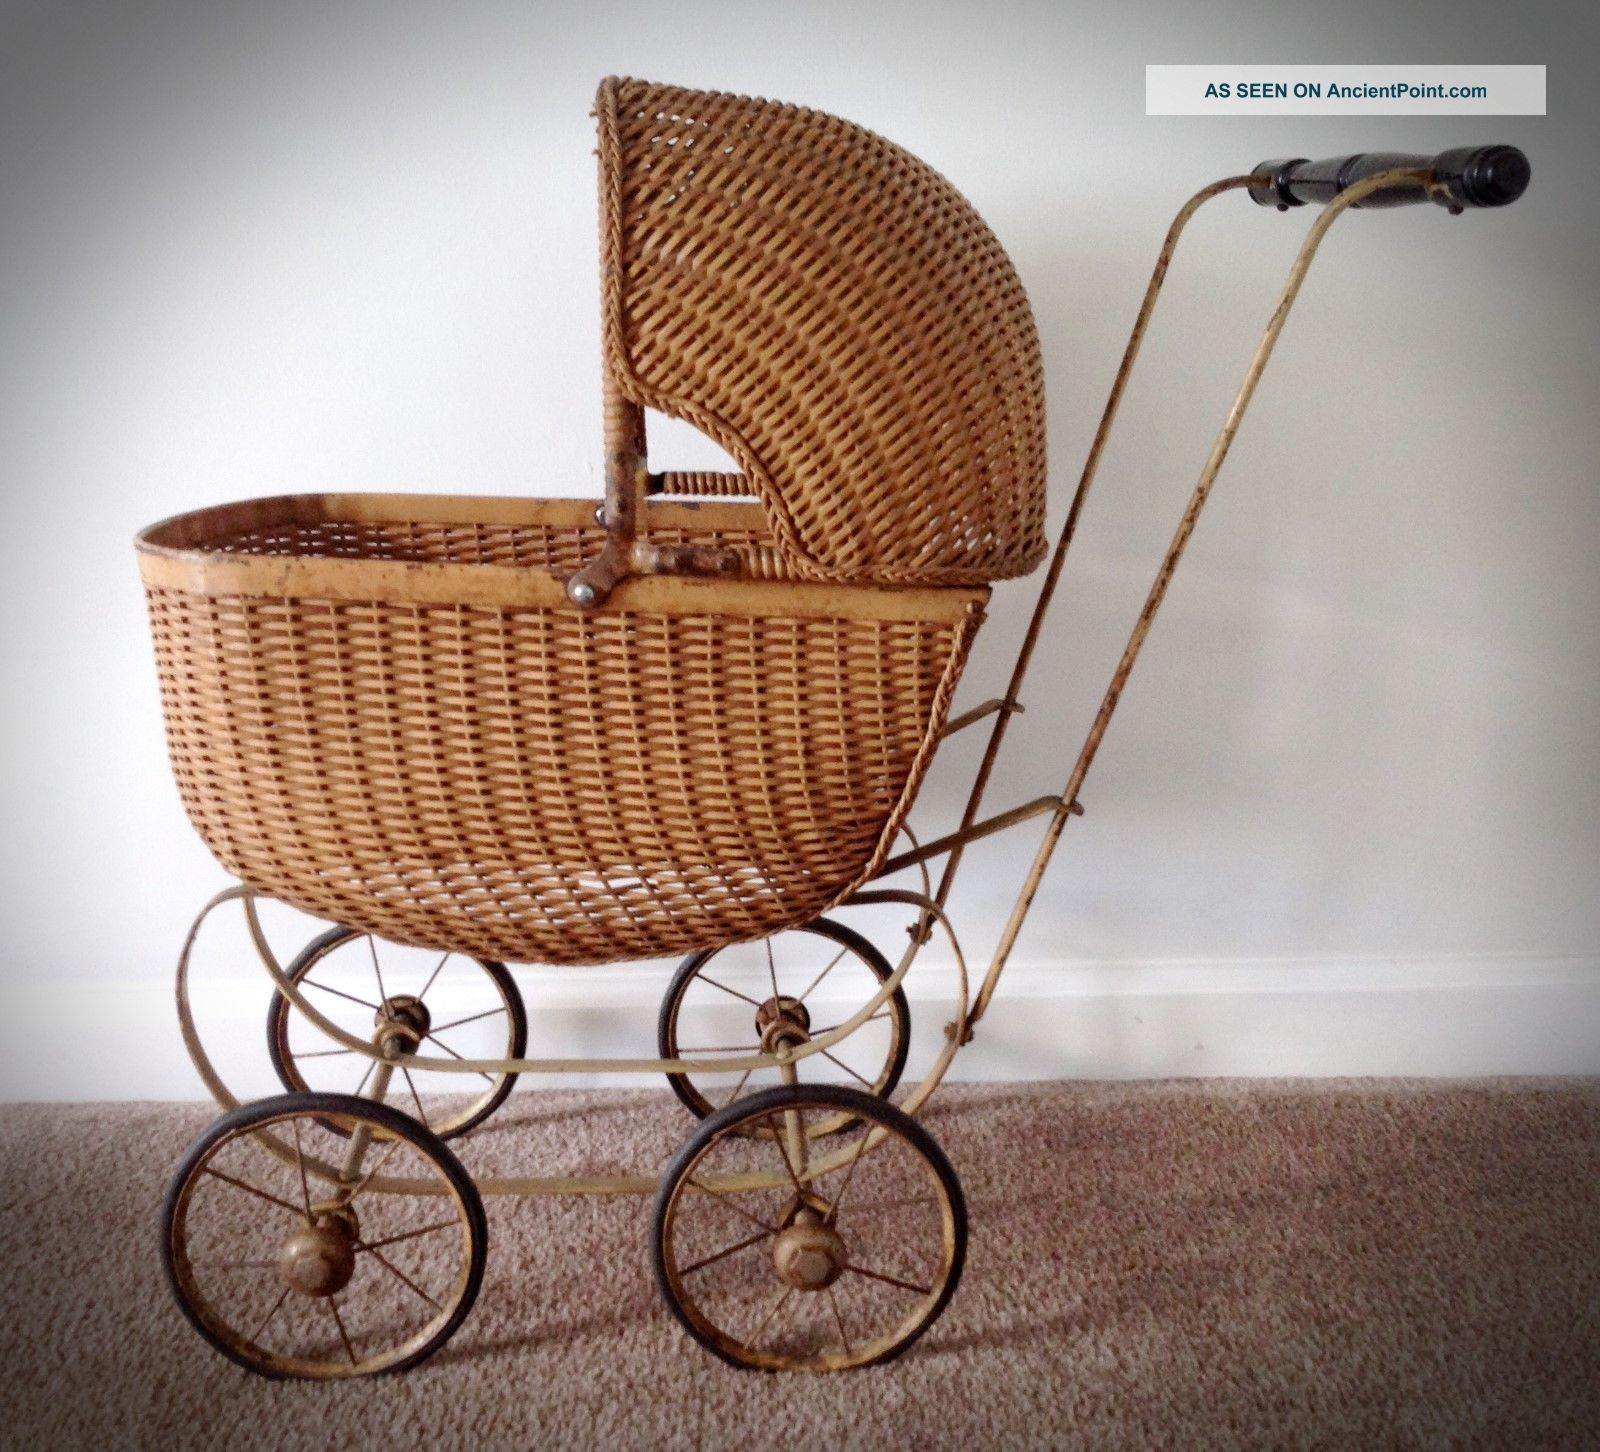 Antique/vintage Wicker Doll Baby Carriage Early 1900s Baby Carriages & Buggies photo